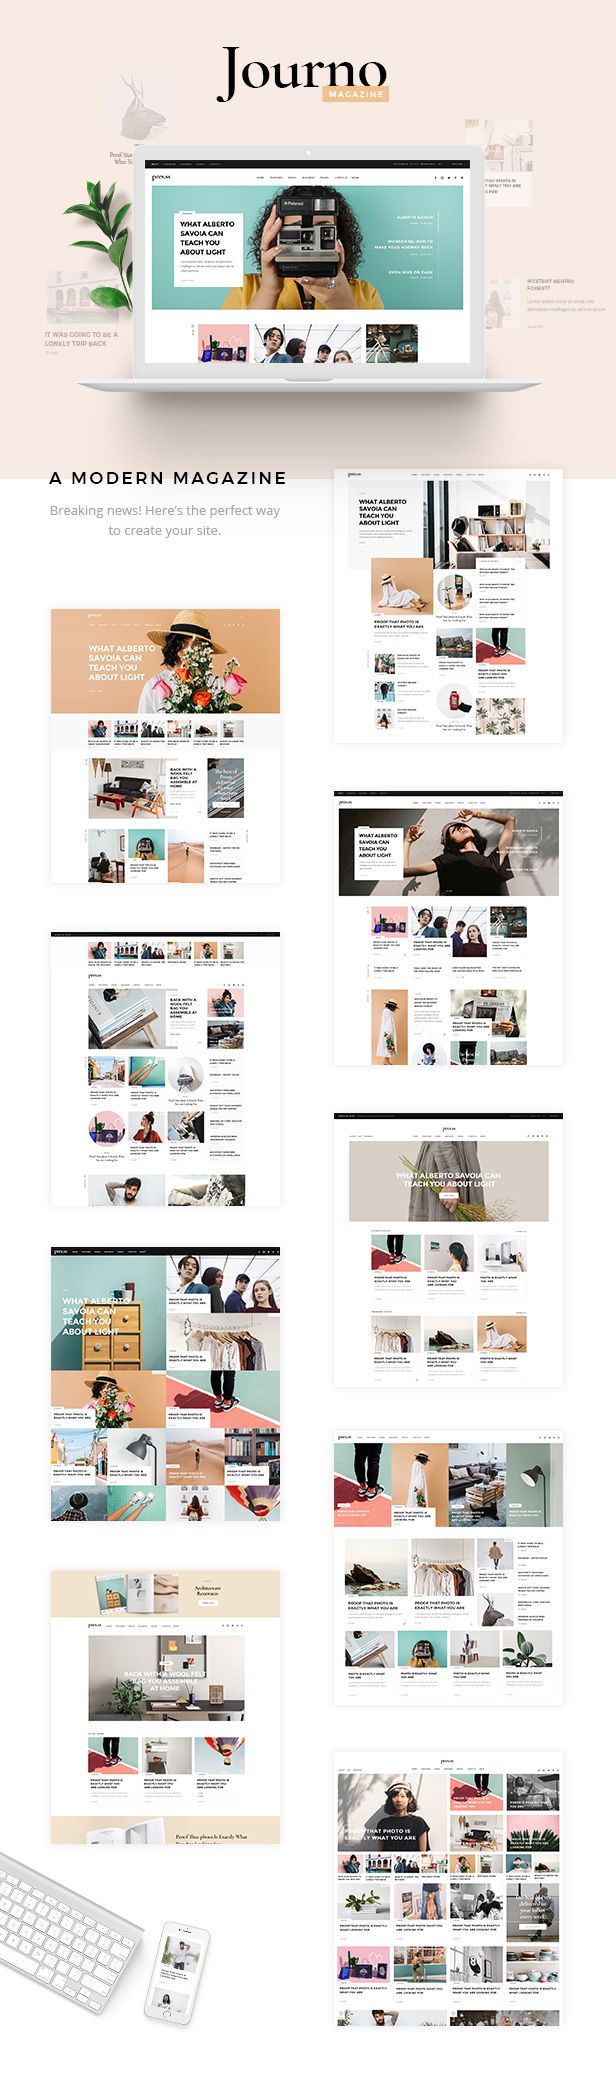 journo - a creative magazine and blog theme (news / editorial) Journo – A Creative Magazine and Blog Theme (News / Editorial) 01